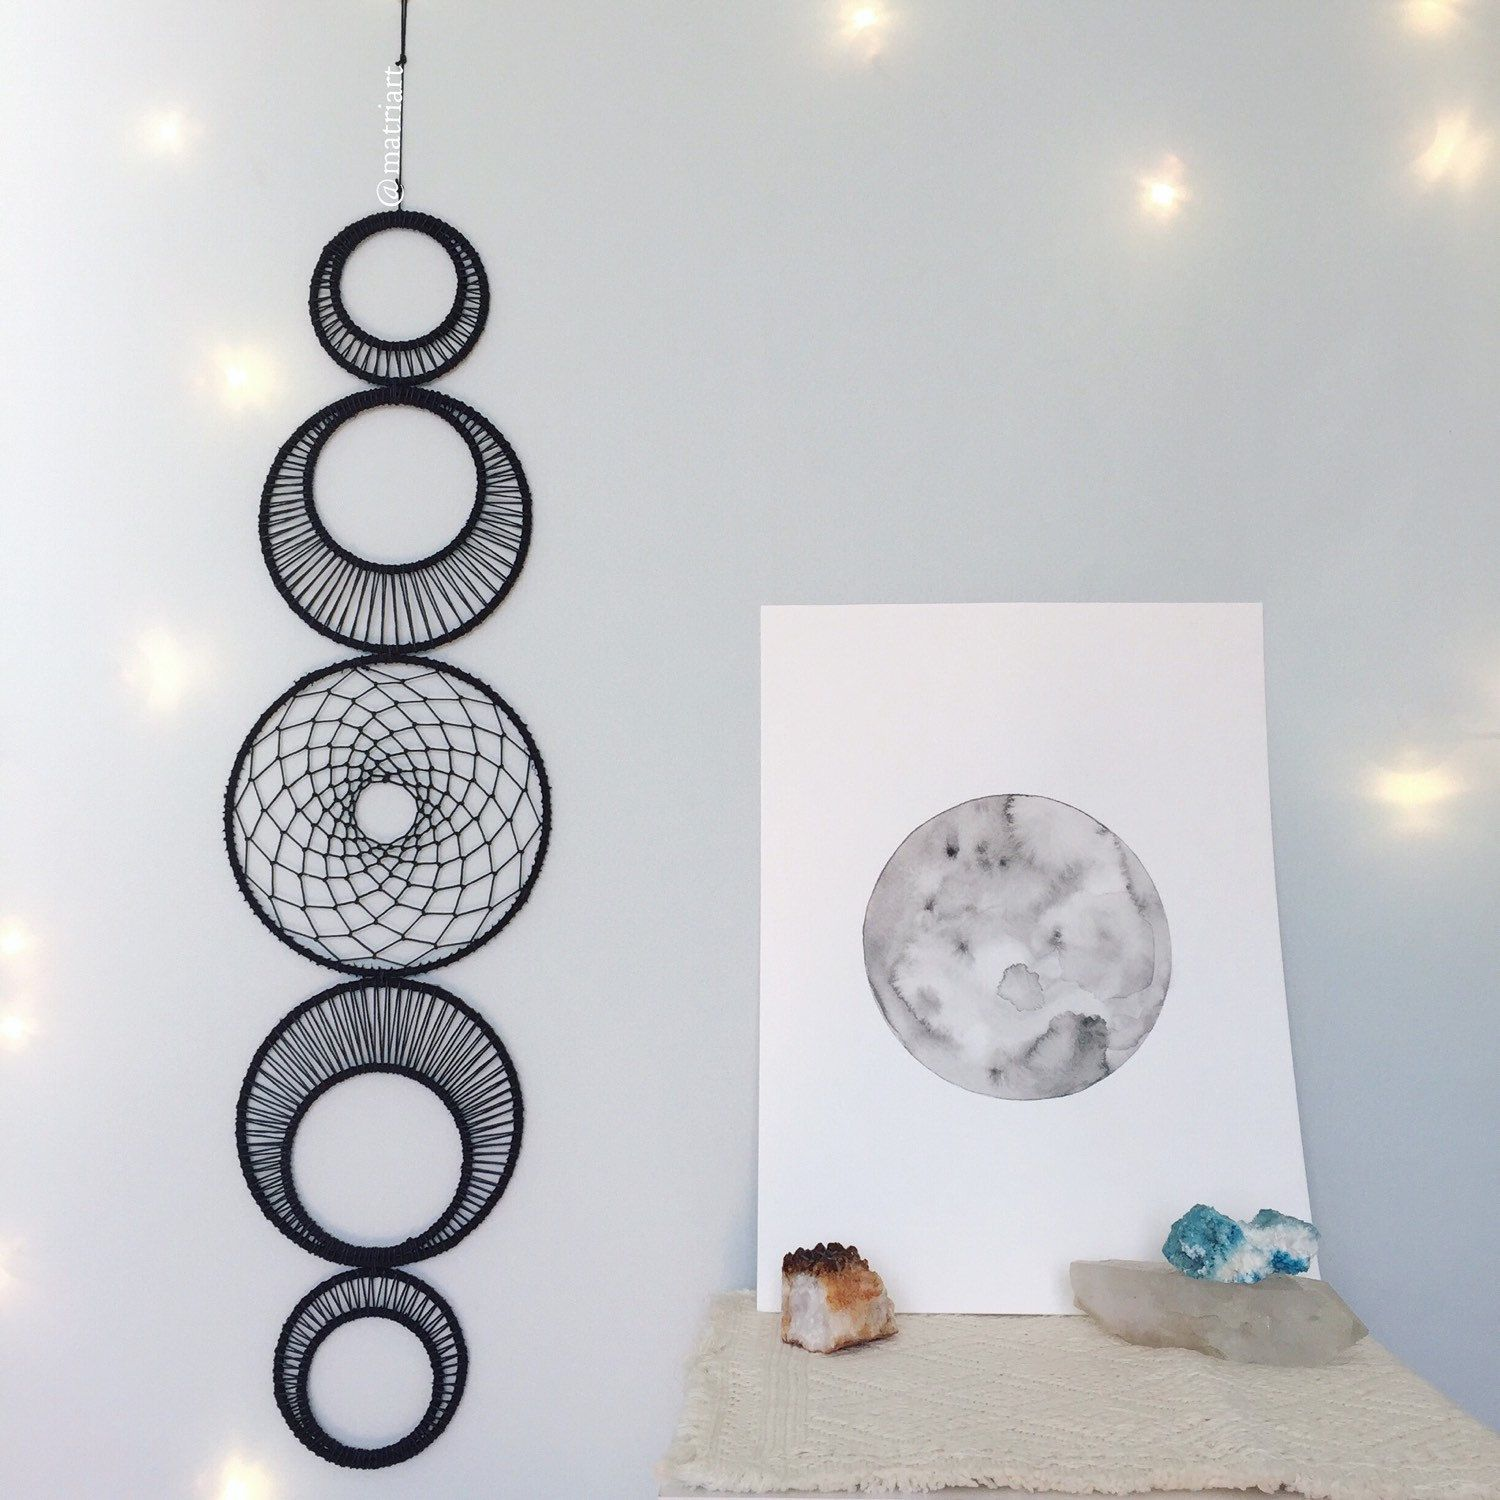 Dreamcatcher Wall Art large moon phase wall art - large moonphase wall hanging - lunar